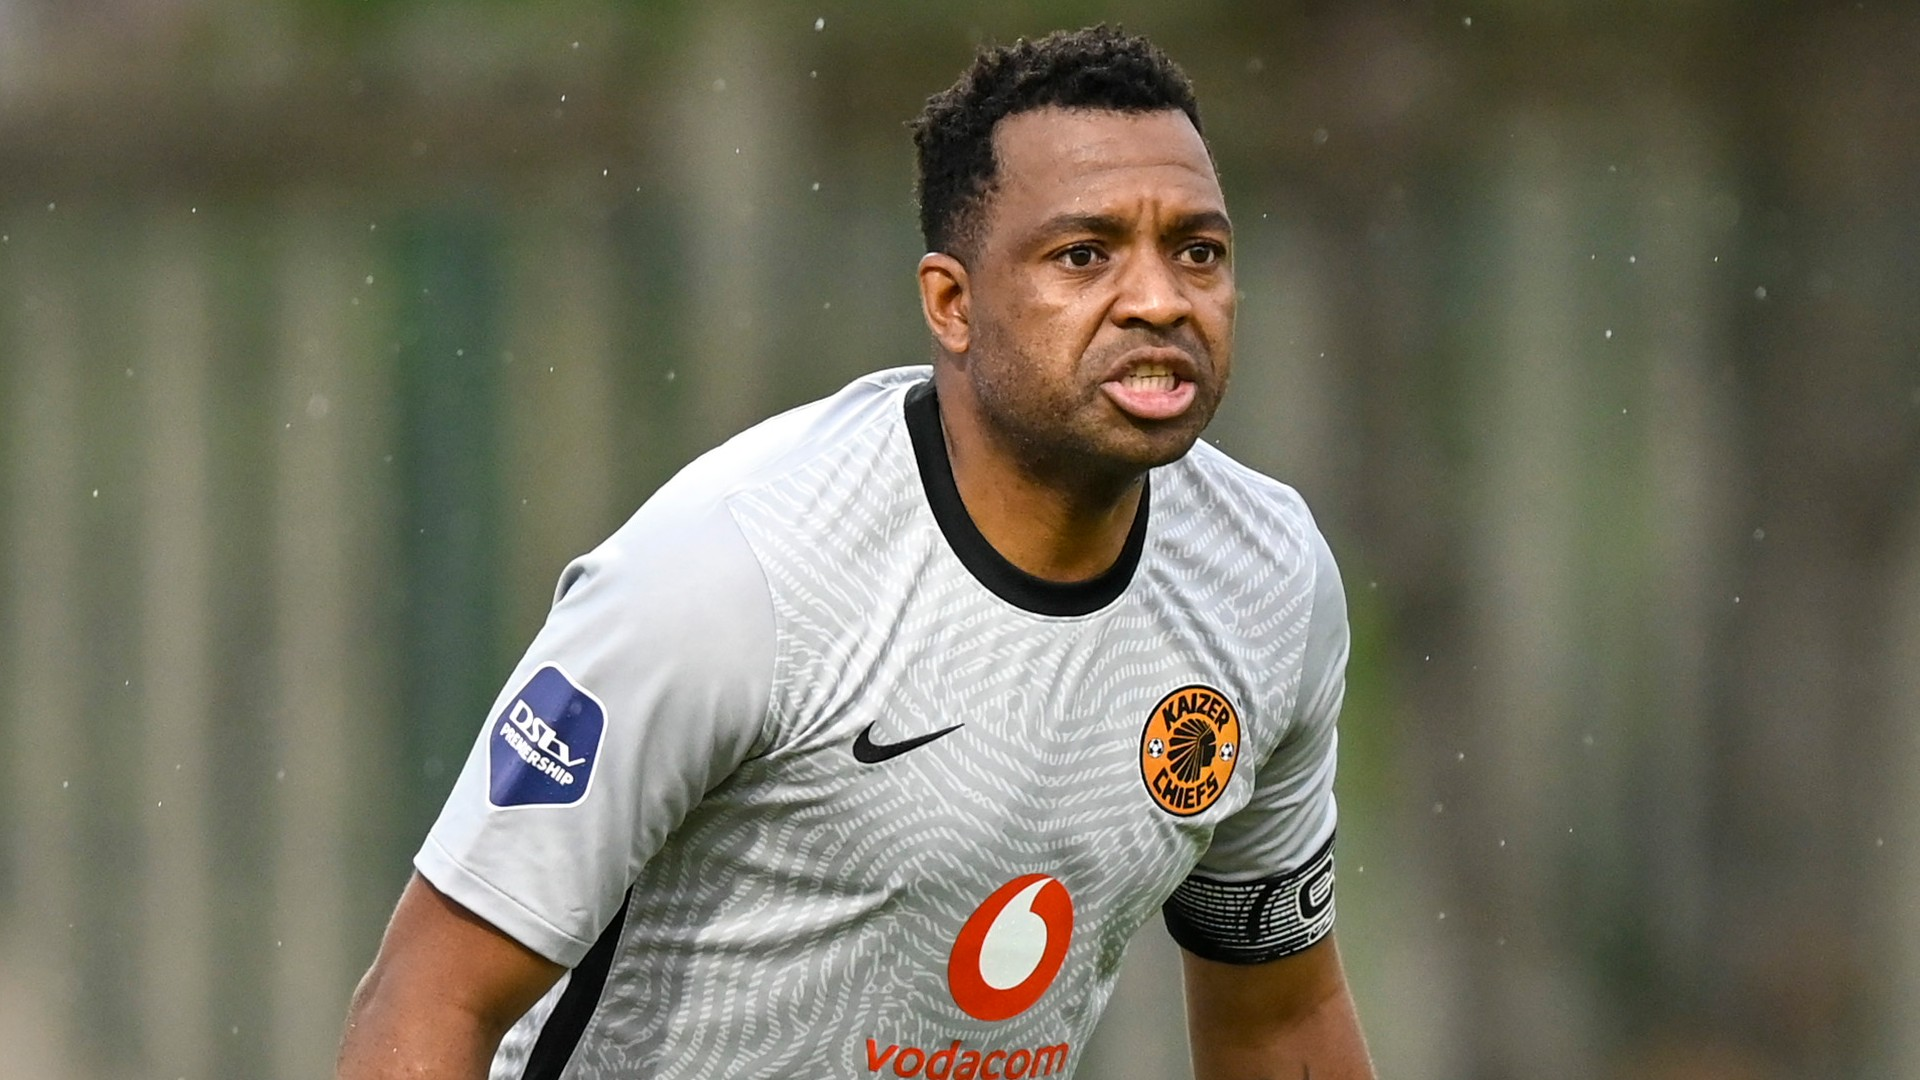 Kaizer Chiefs goalkeeper Khune slammed by fans on social media for asking for haircut advice